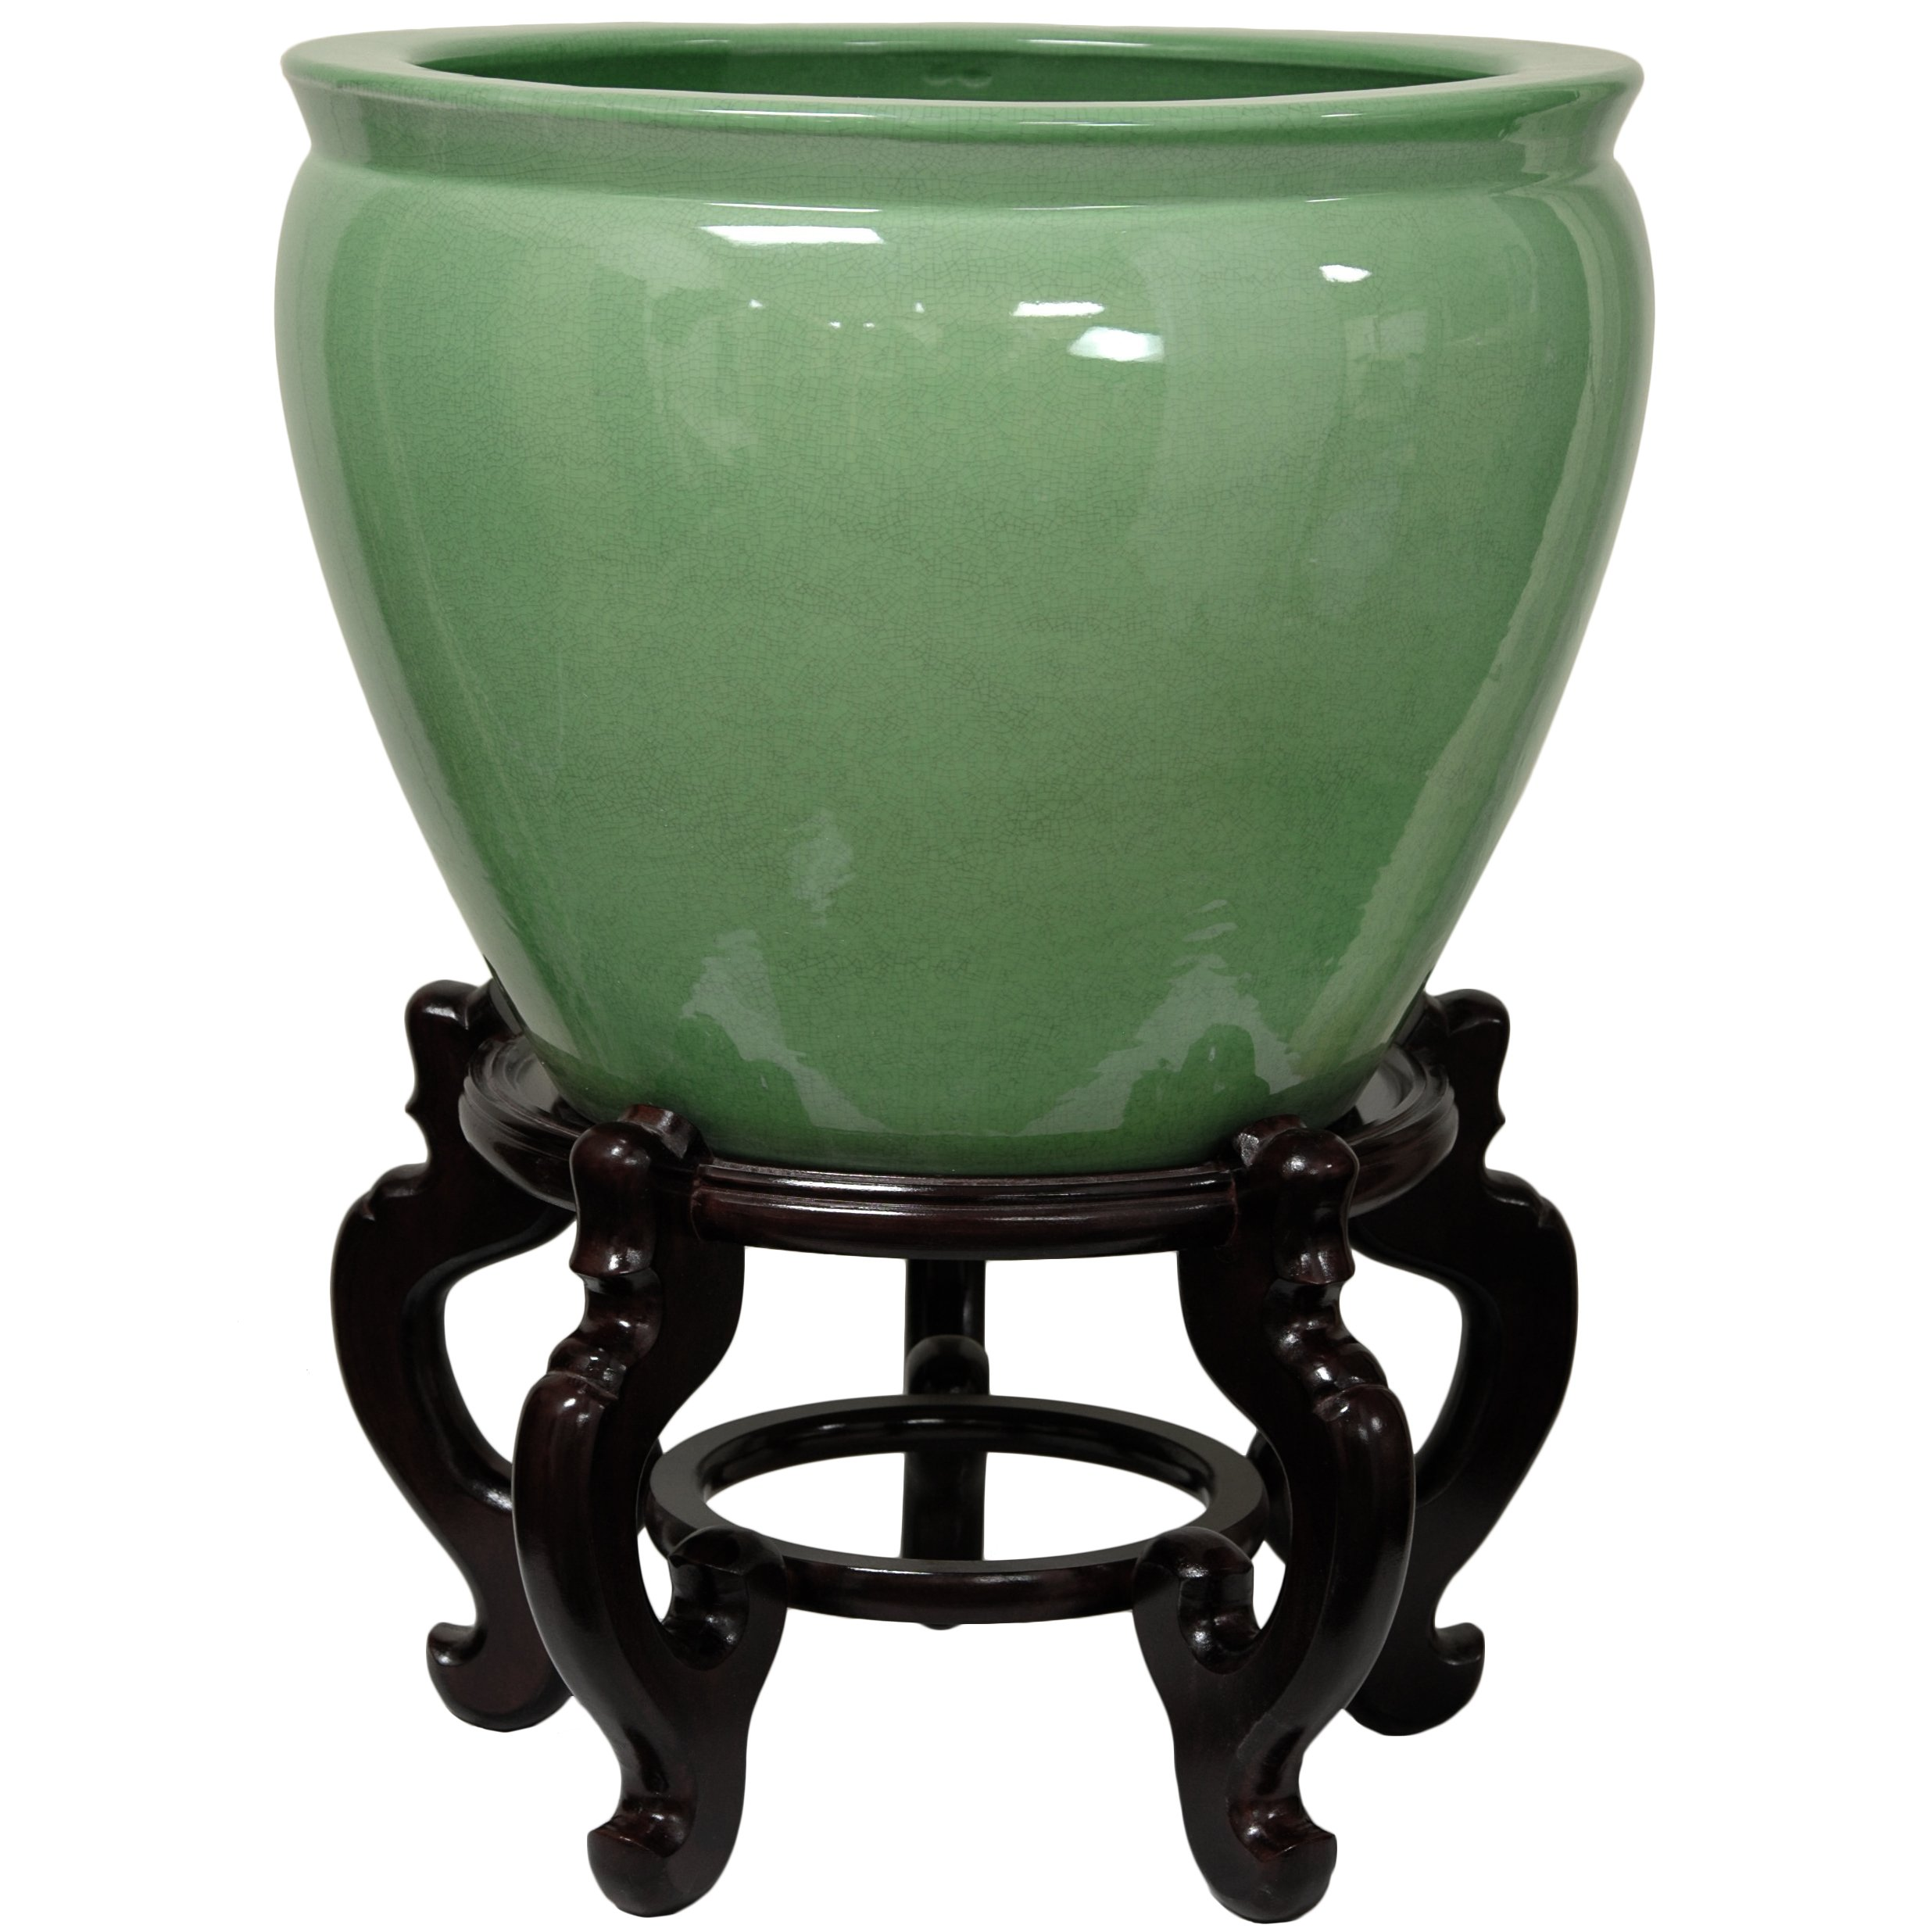 Oriental Furniture 20'' Celadon Porcelain Fishbowl by ORIENTAL FURNITURE